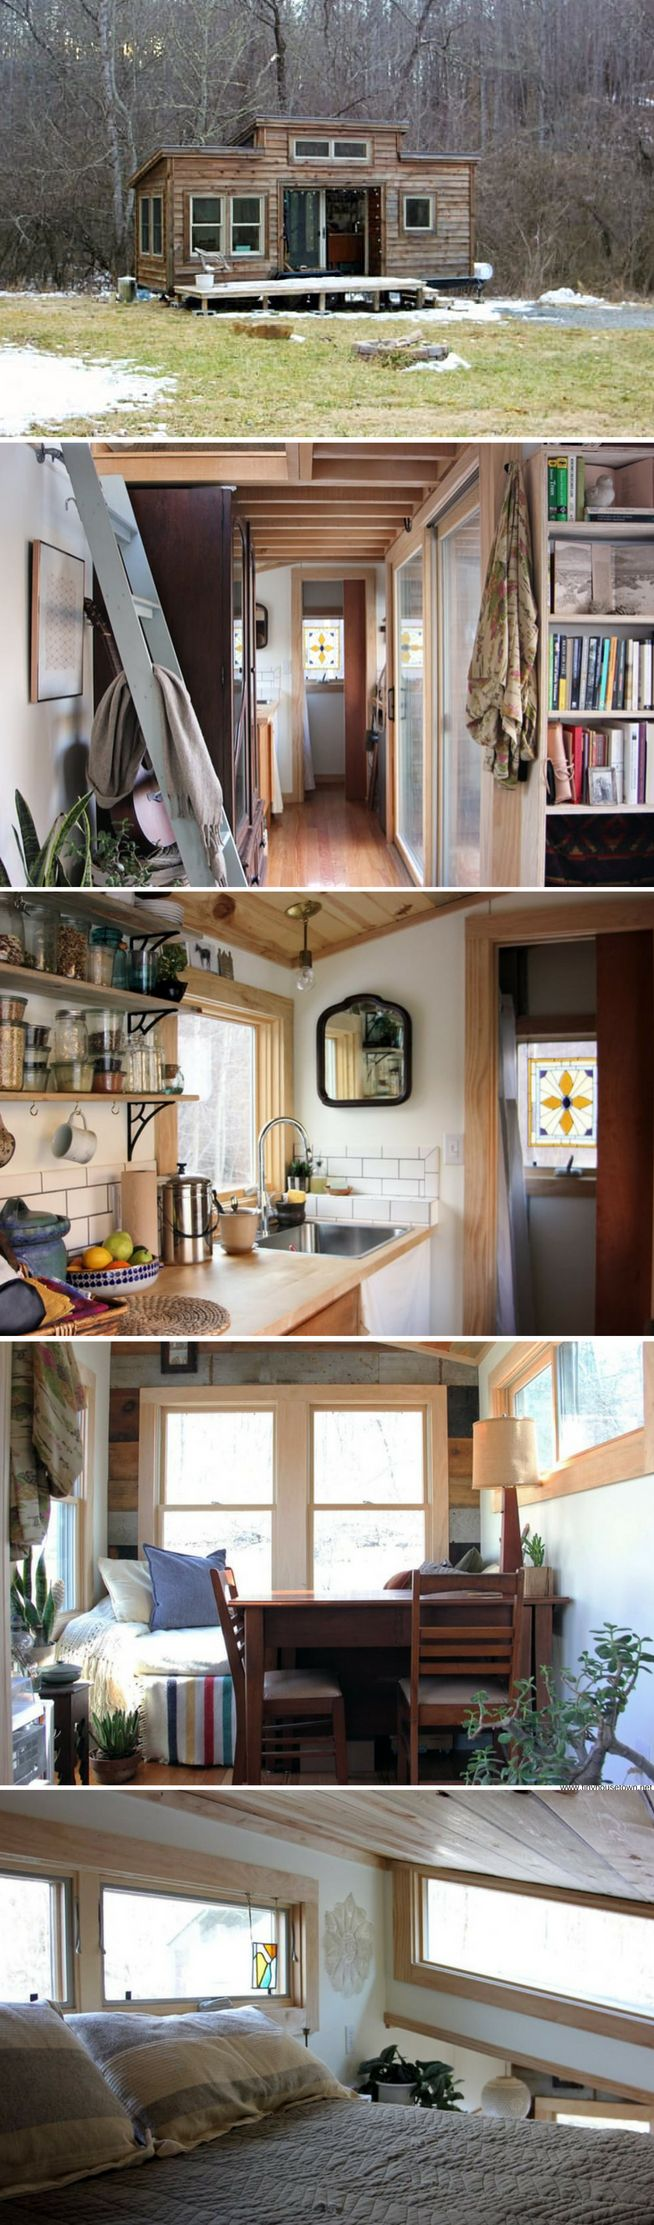 The Whats Up Tiny House: A 265 Sq Ft Tiny Home With A Minimal And Pure Design…